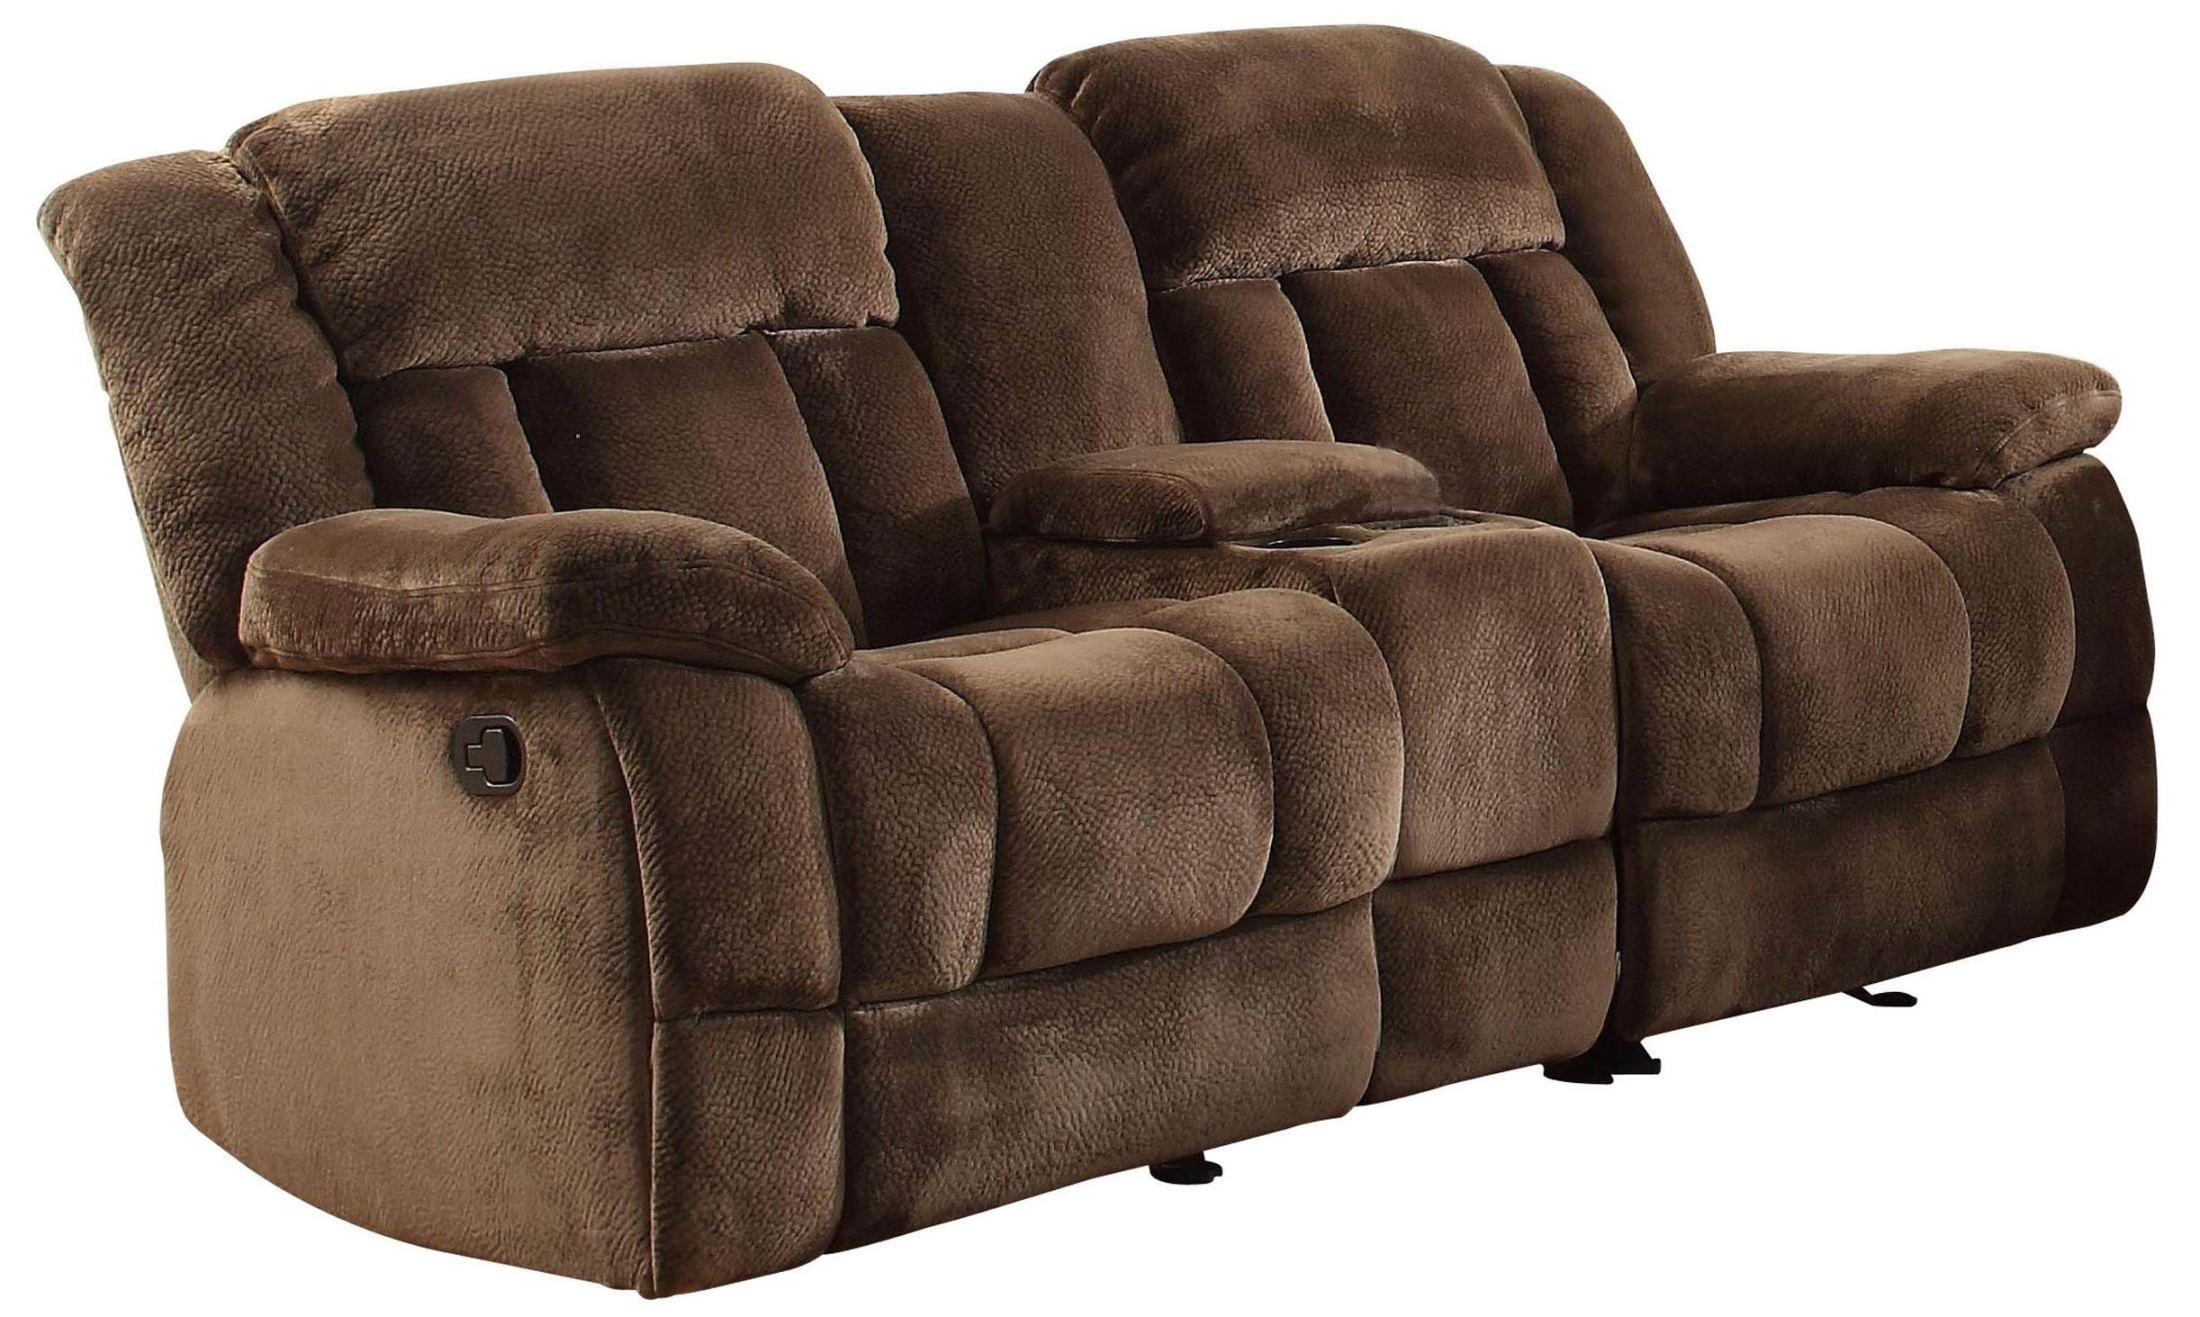 Laurelton Chocolate Double Glider Reclining Loveseat With Console From Homelegance 11689